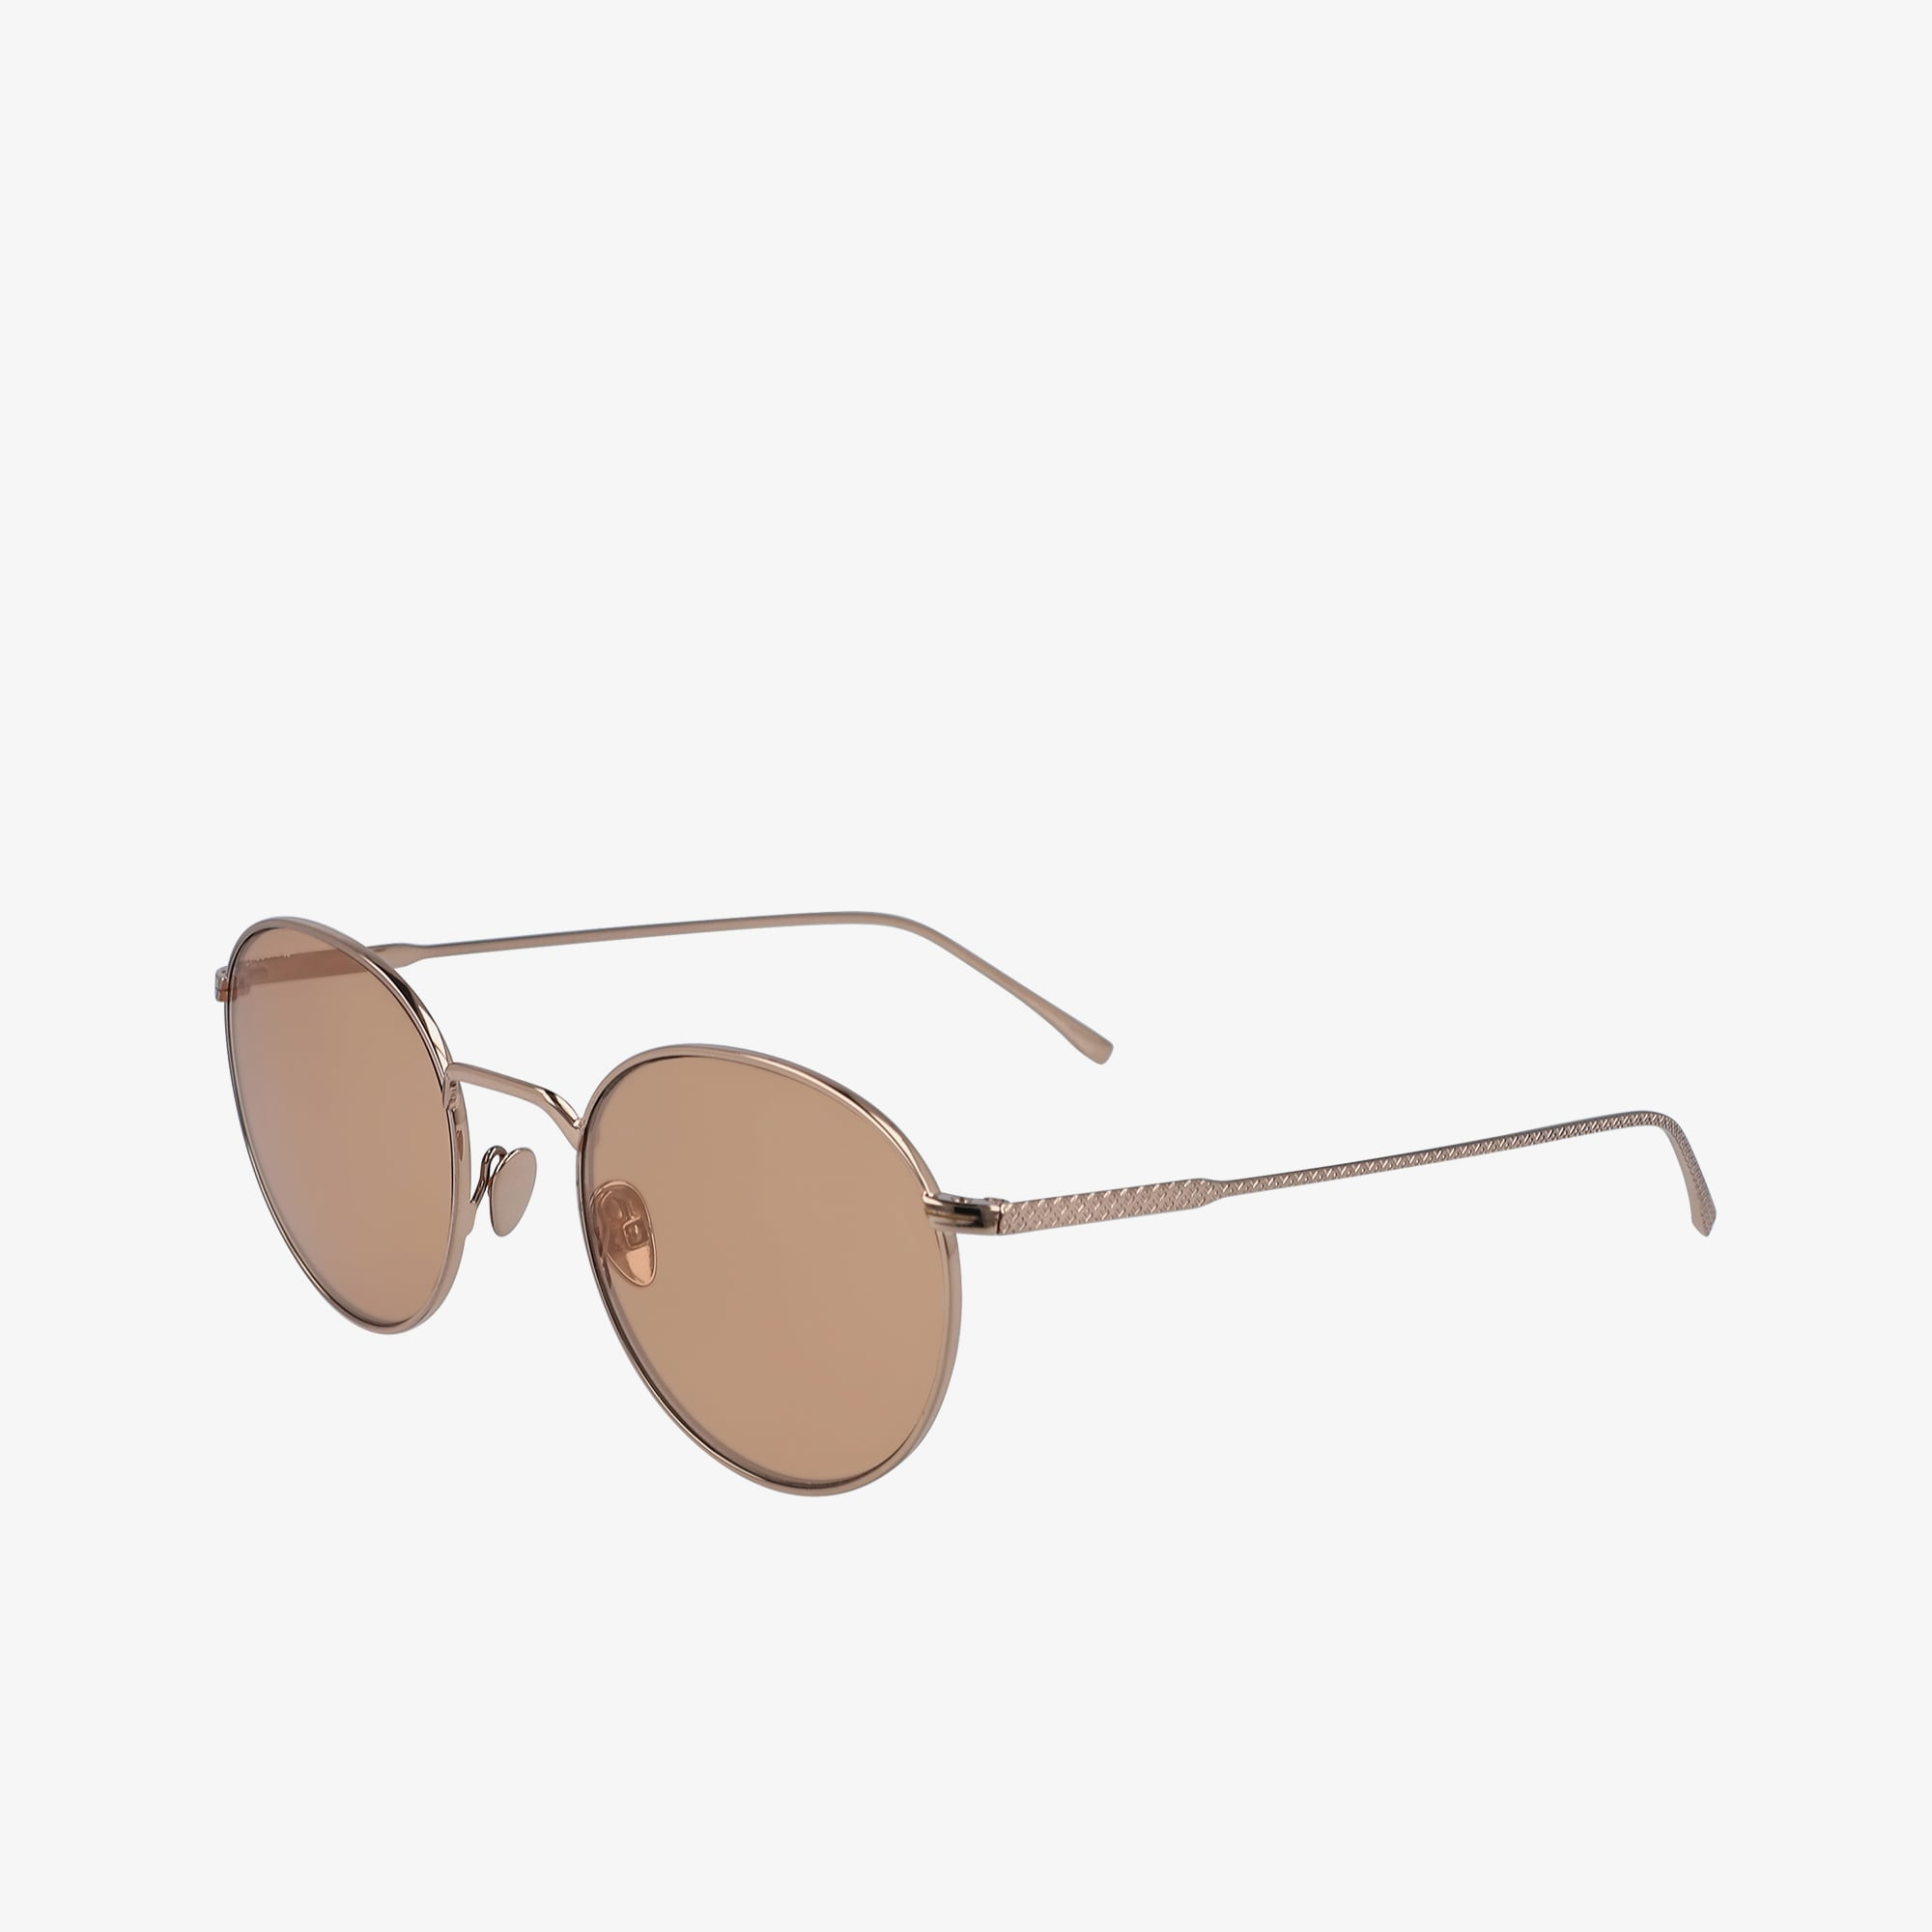 Round Metal Ultra-Thin Sunglasses